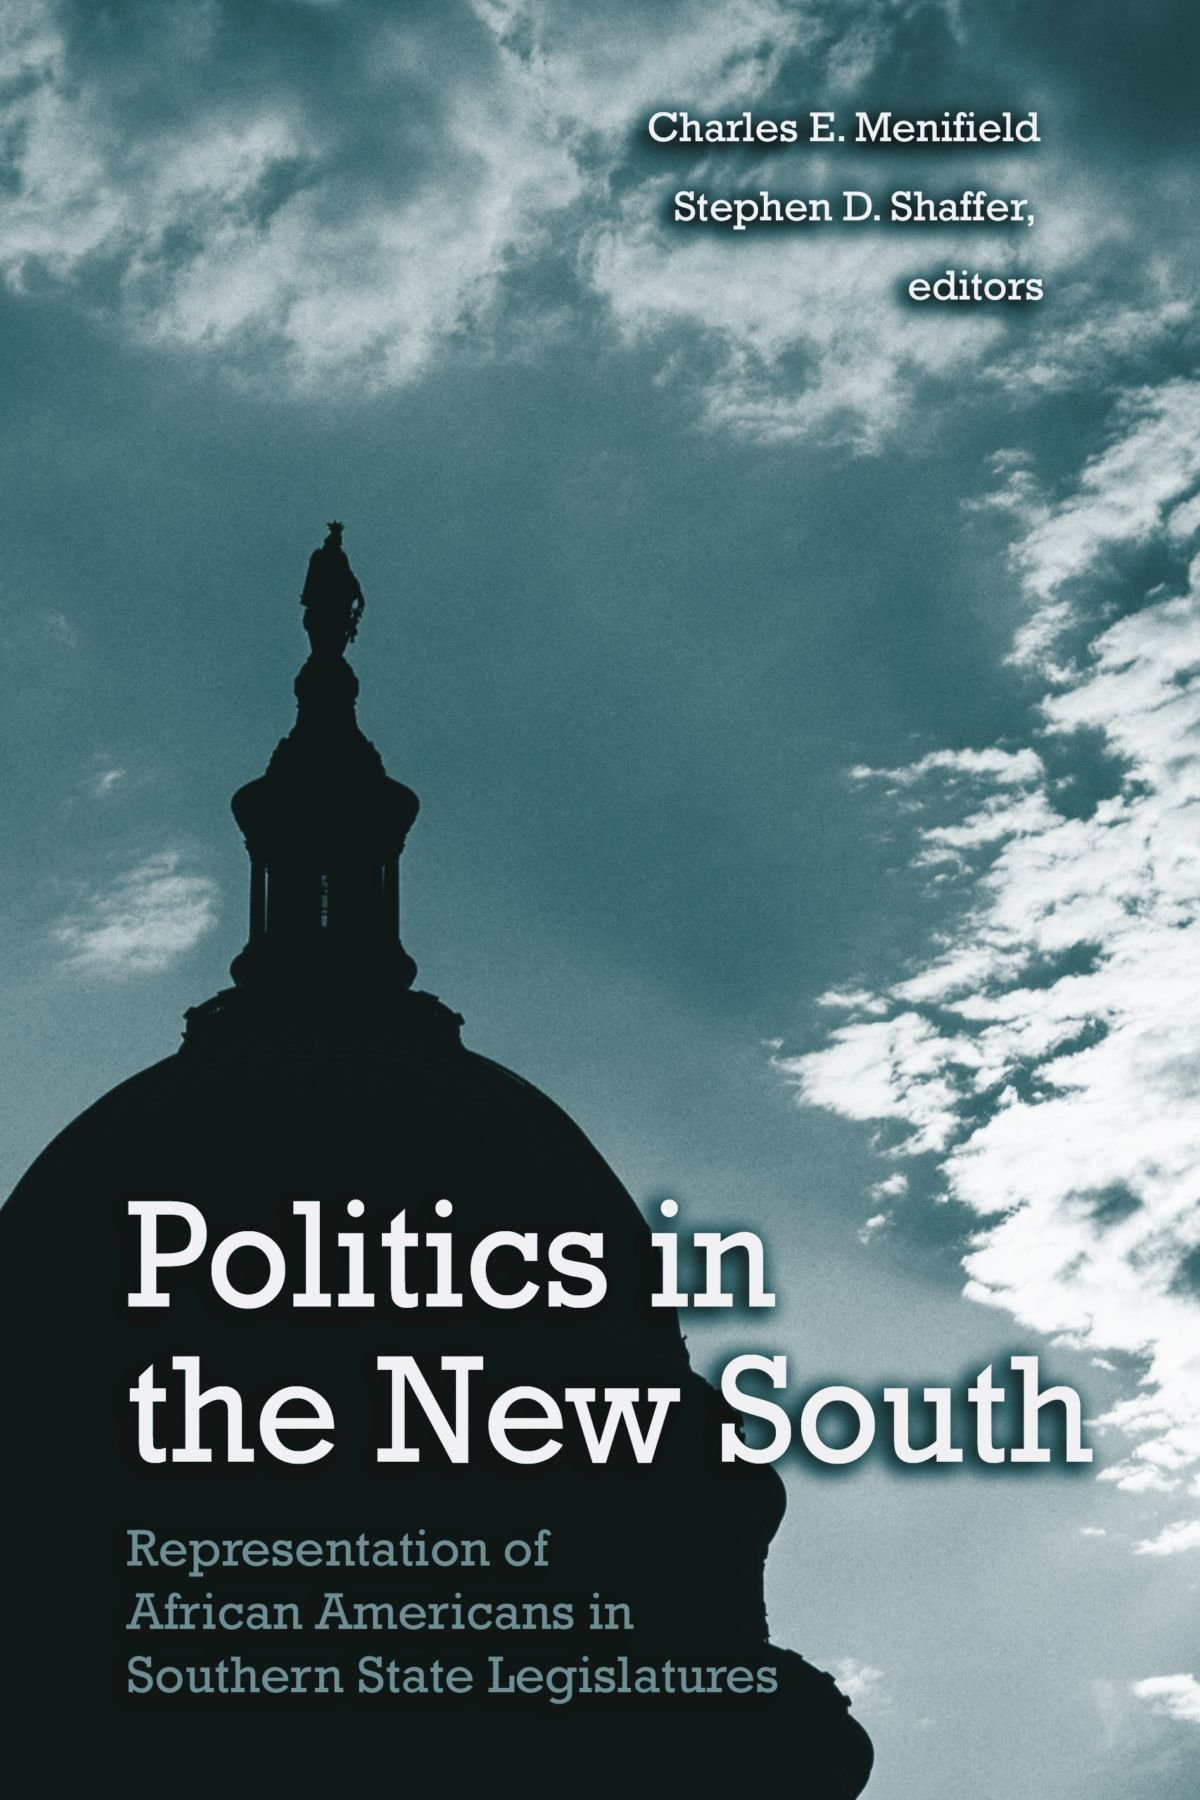 Download Politics in the New South: Representation of African Americans in Southern State Legislatures (SUNY series in African American Studies) pdf epub